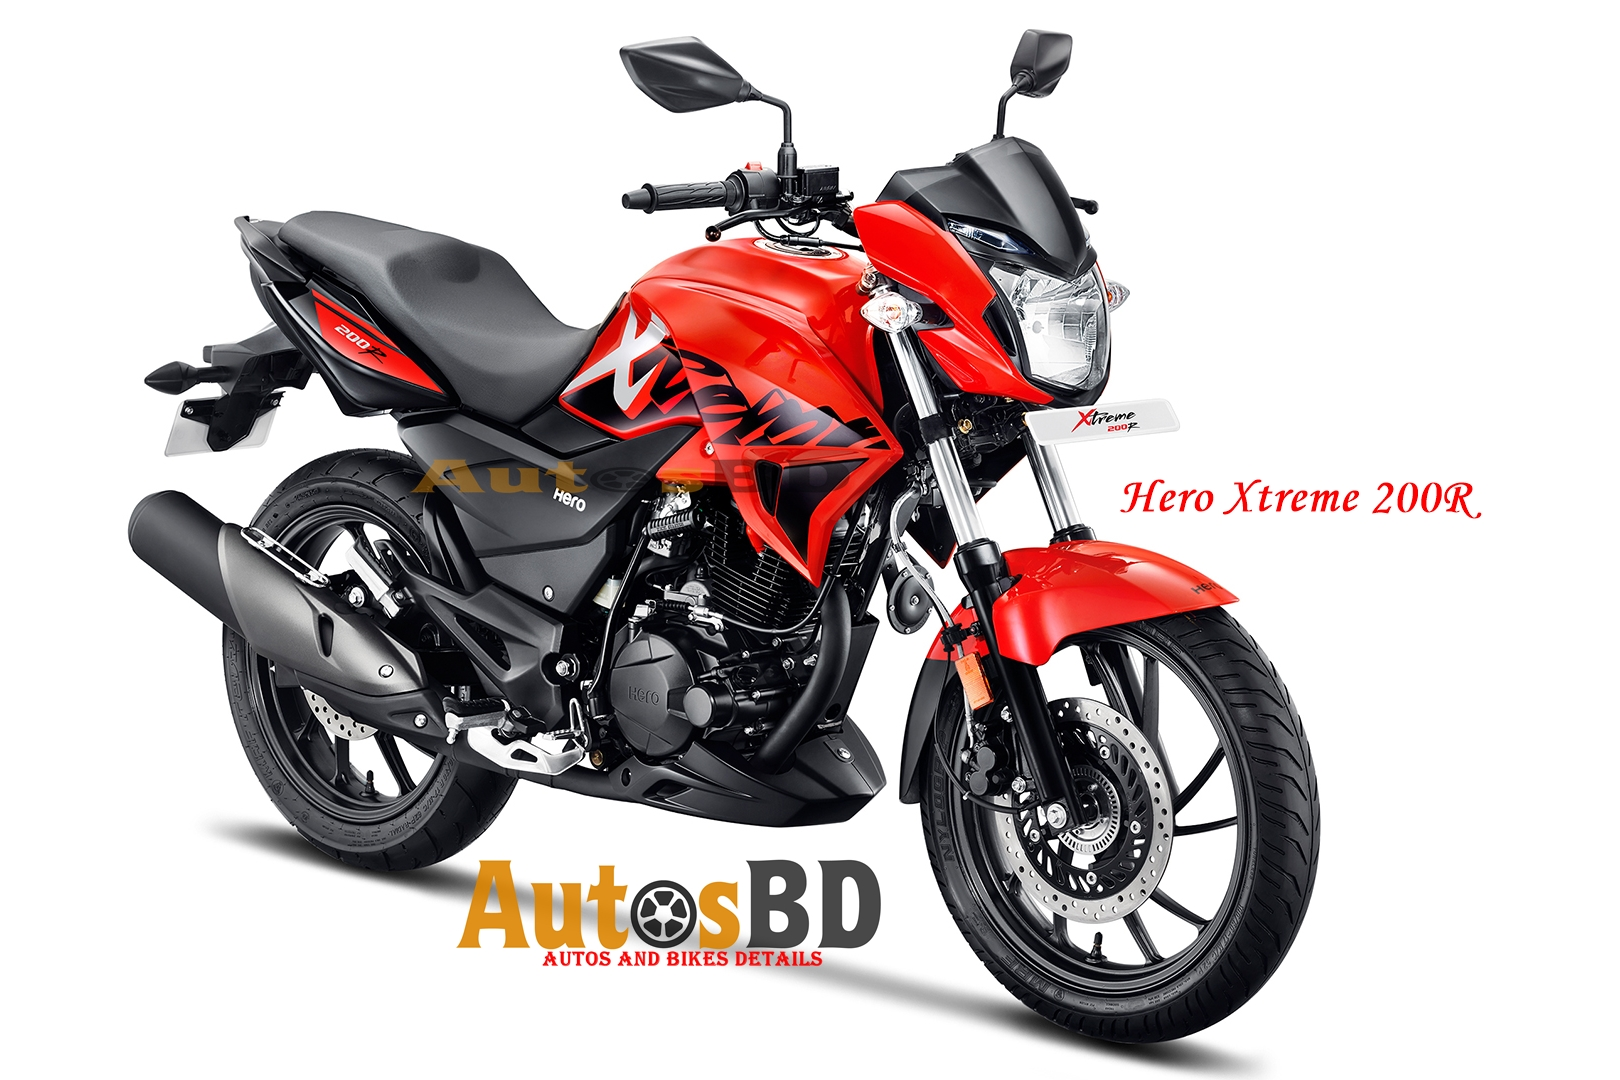 Hero Xtreme 200R Motorcycle Price in India